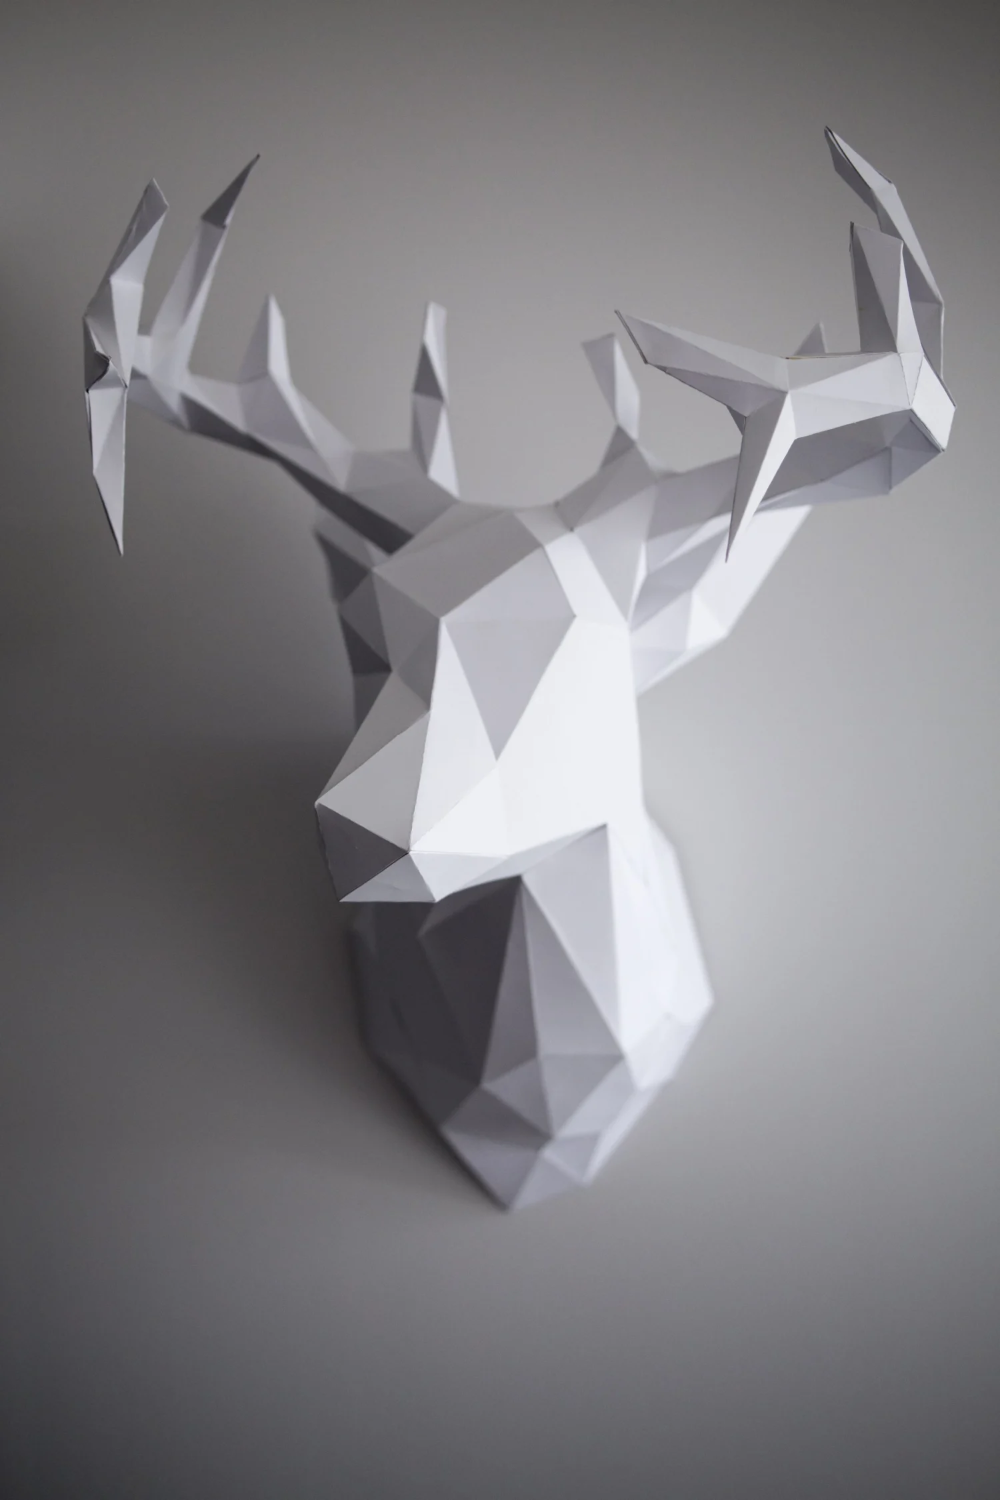 DIY 3D Paper Reindeer Head (Just in time for Christmas!)